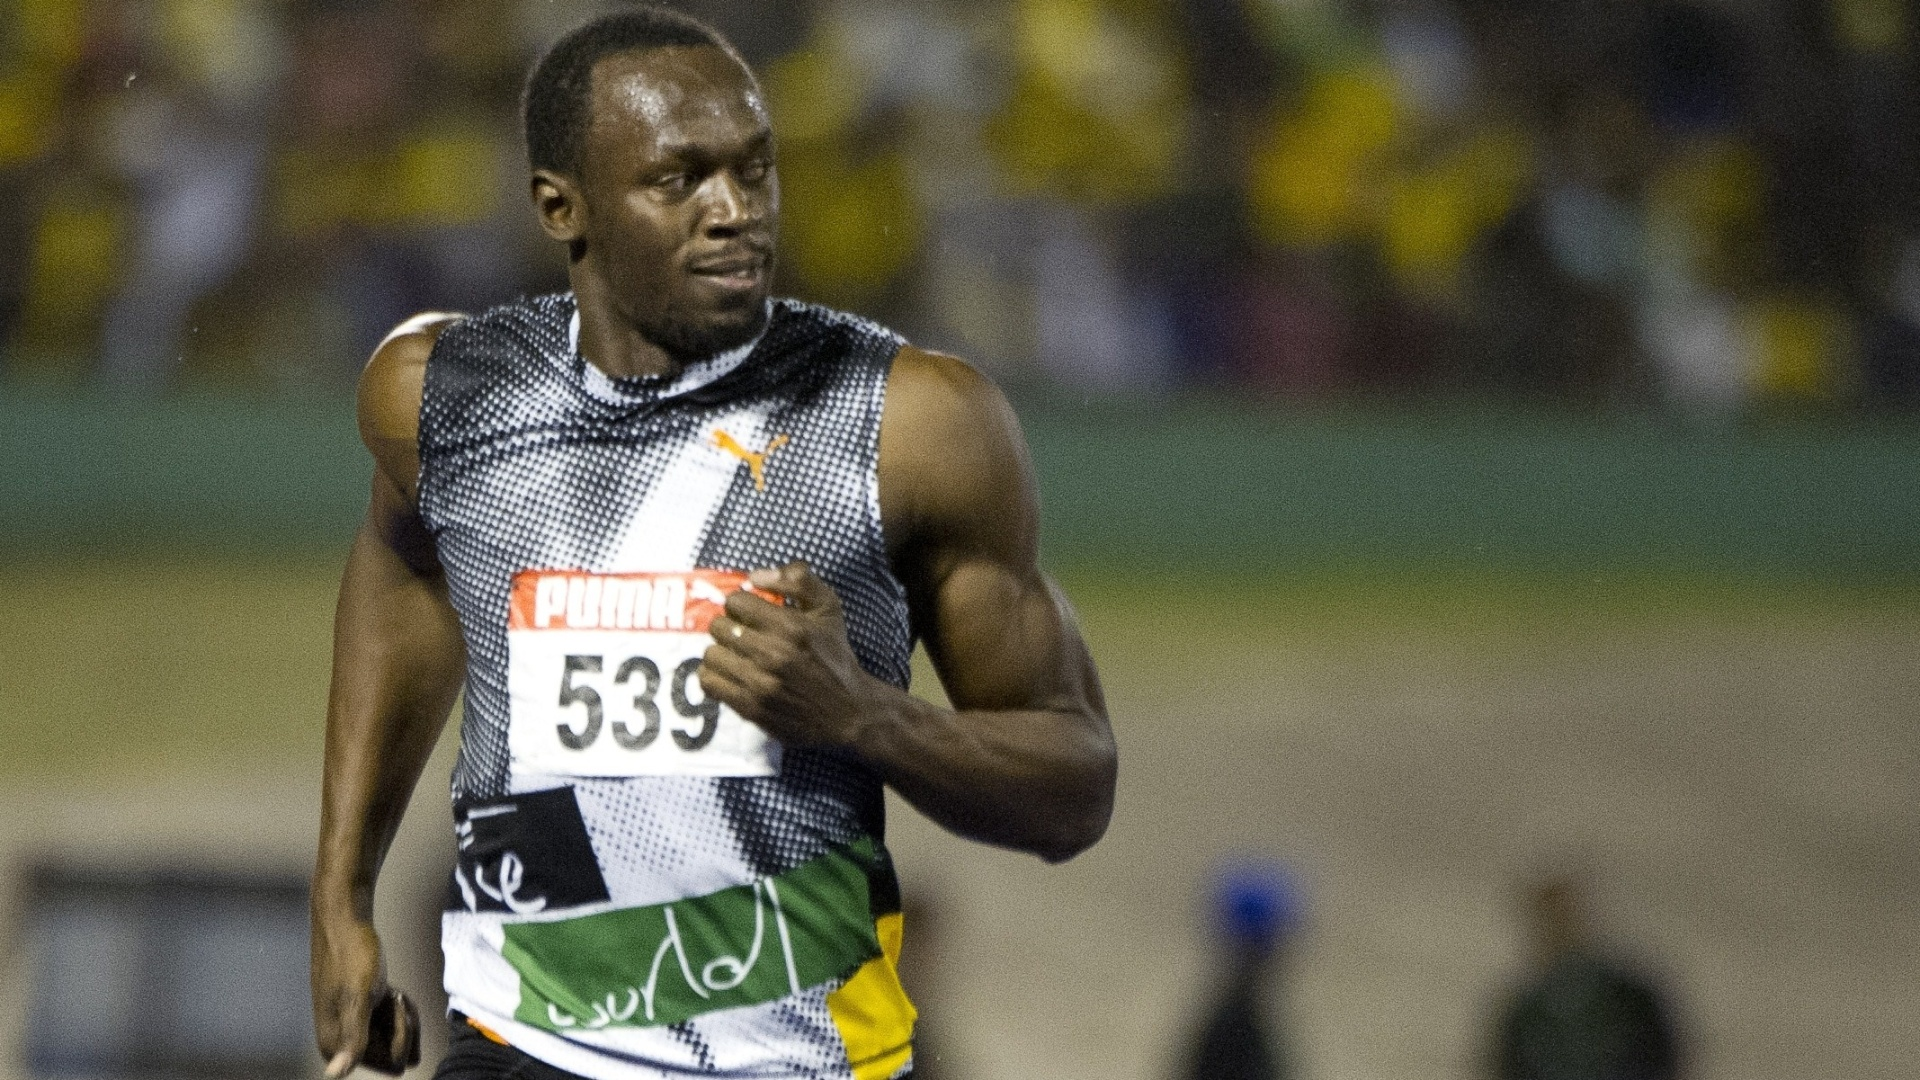 Usain Bolt durante a seletiva olmpica jamaicana